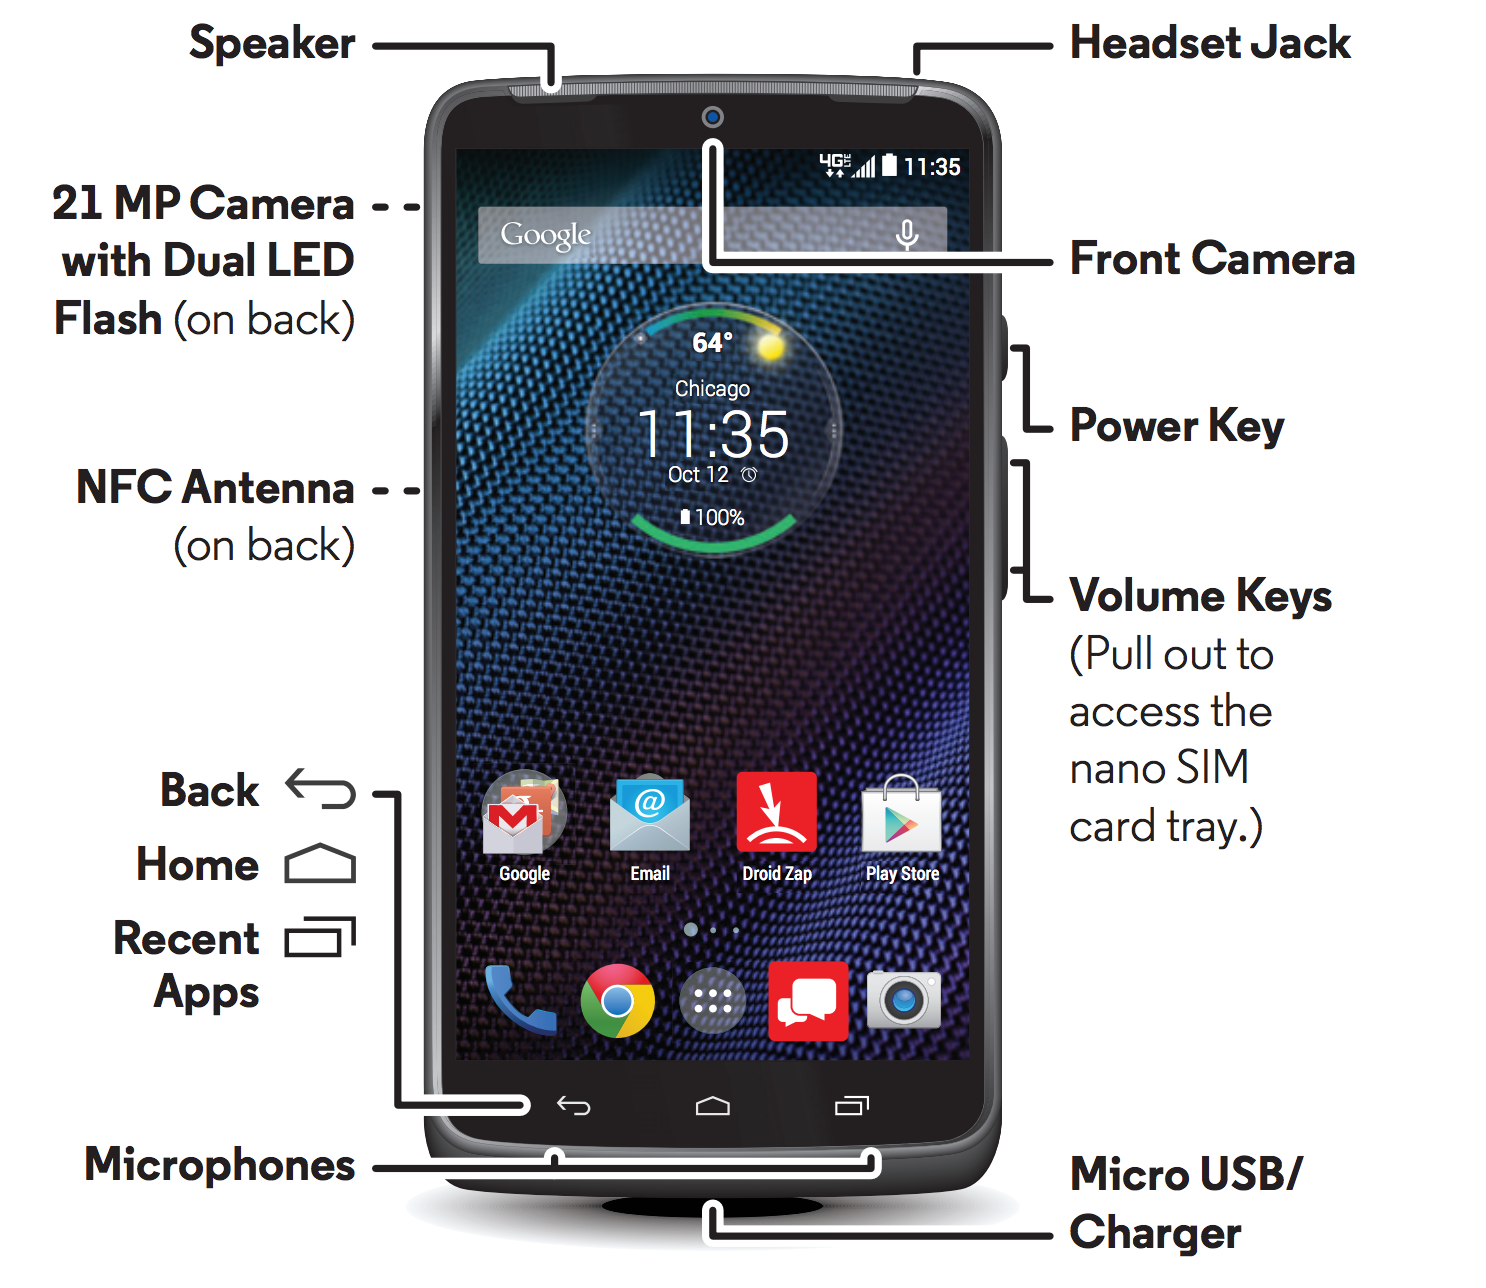 motorola droid turbo exposed in leaked user manual confirms beastly rh phandroid com Cell Phone Motorola WX416 Manual Motorola Phone ManualsOnline